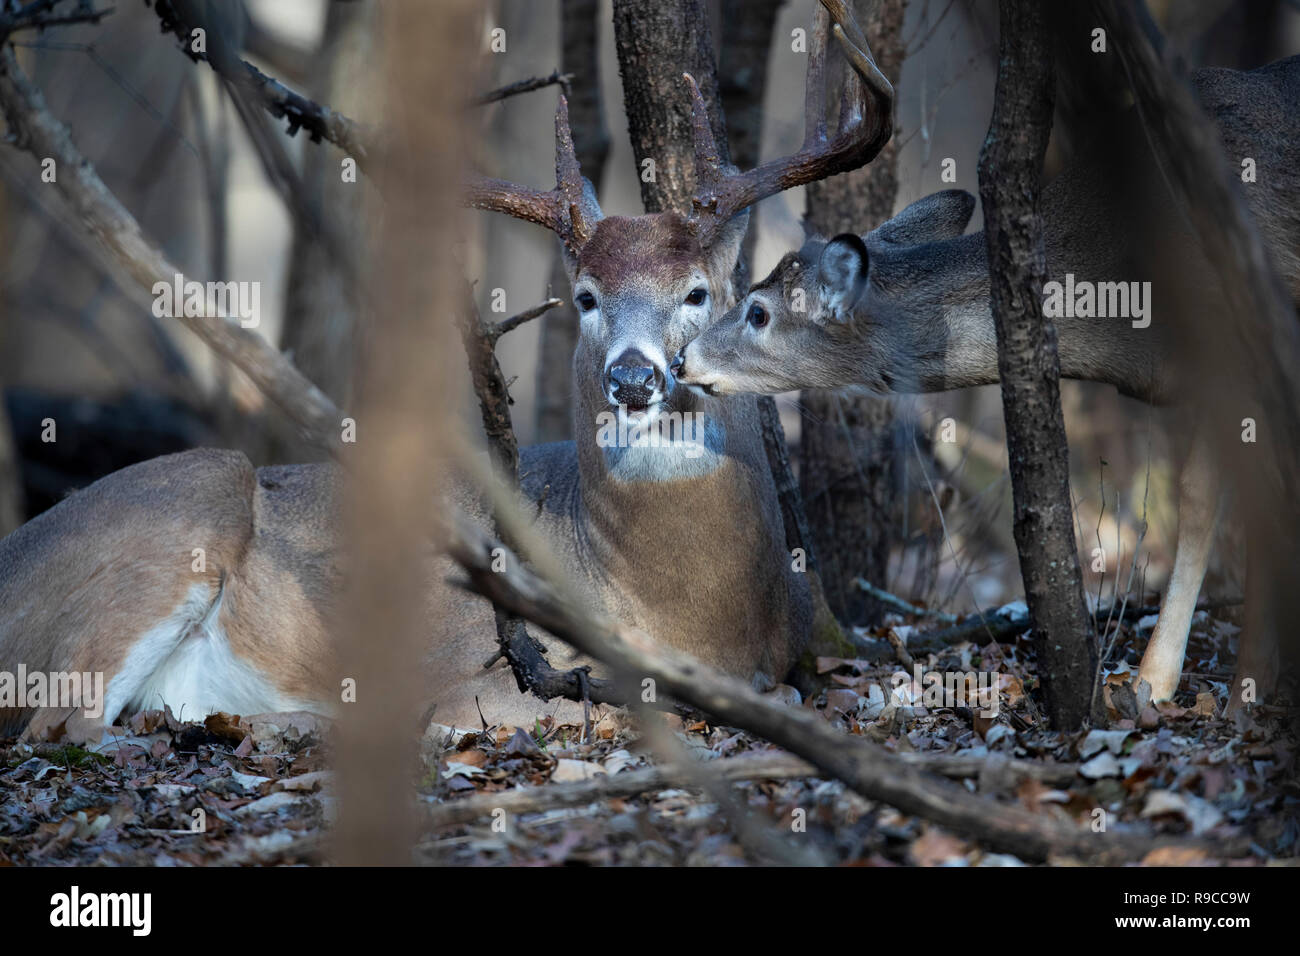 A very young deer grooming a mature buck whitetail deer. - Stock Image